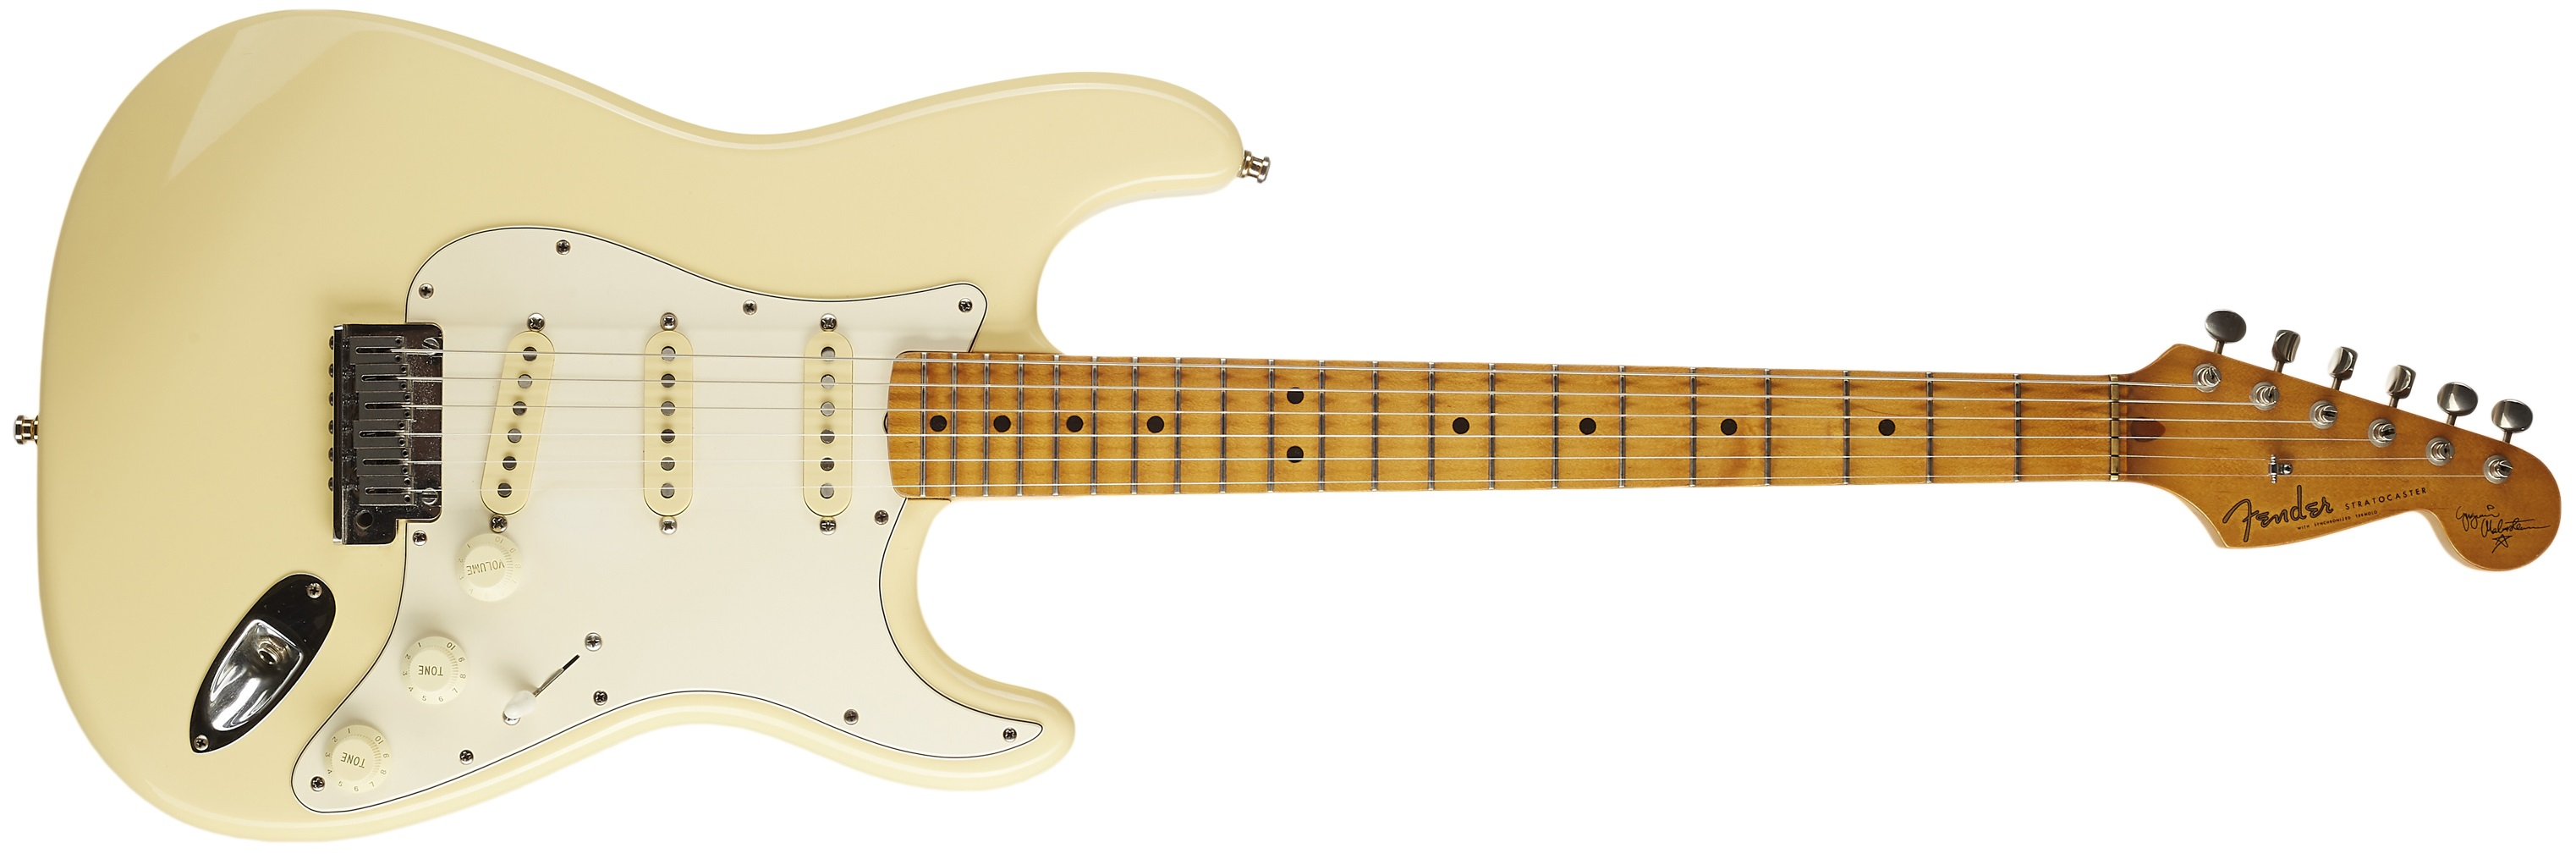 Fender 1989 Yngwie Malmsteen Signature Stratocaster